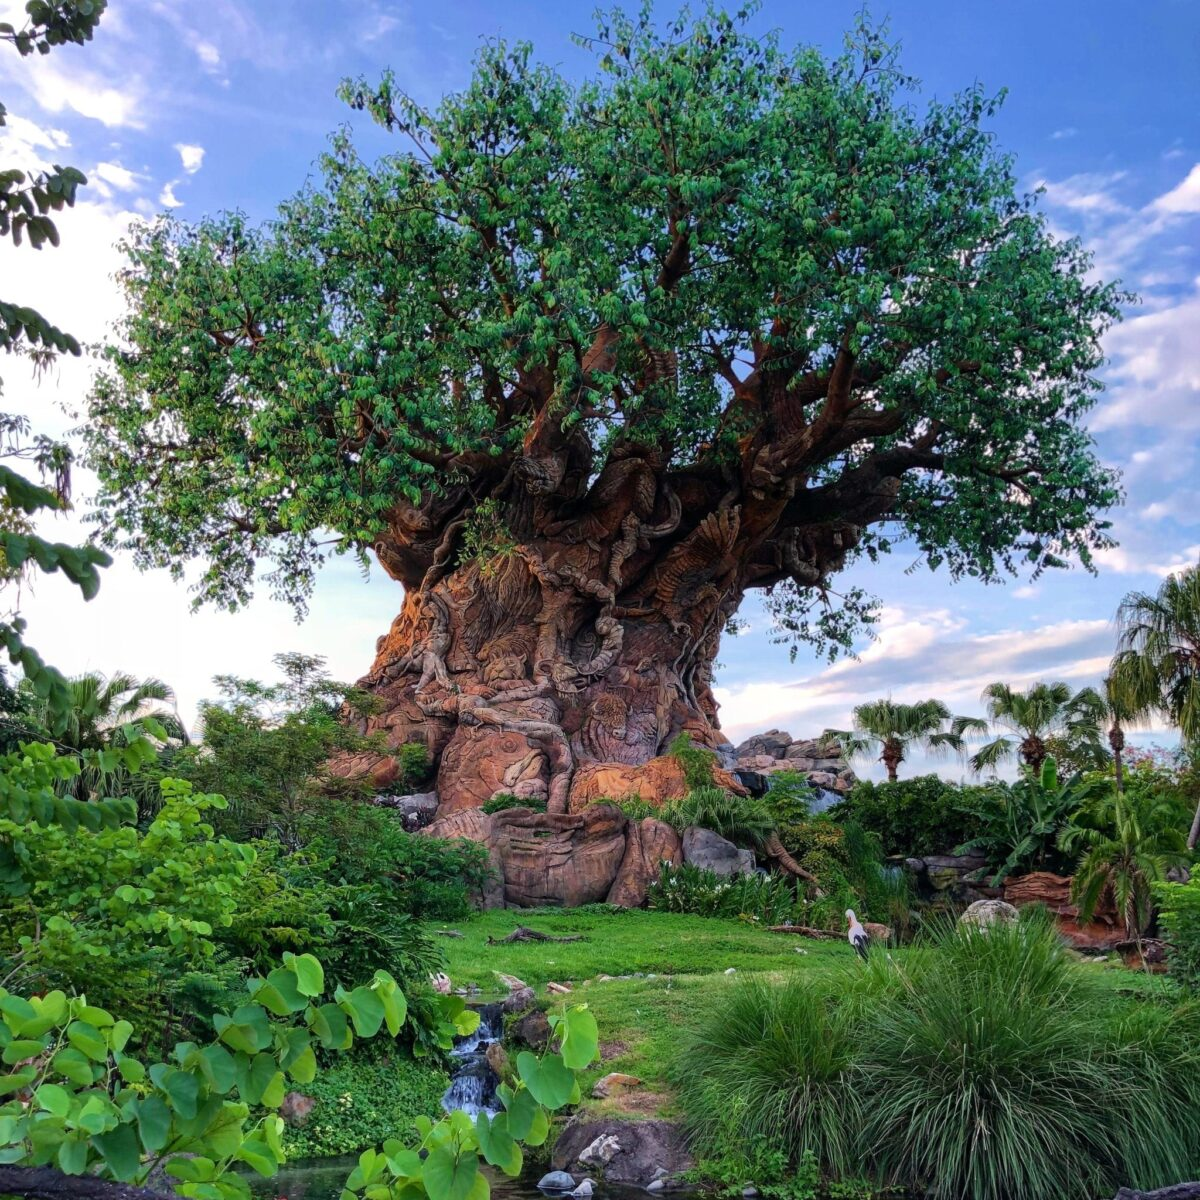 Attraction and Entertainment Details For Walt Disney World